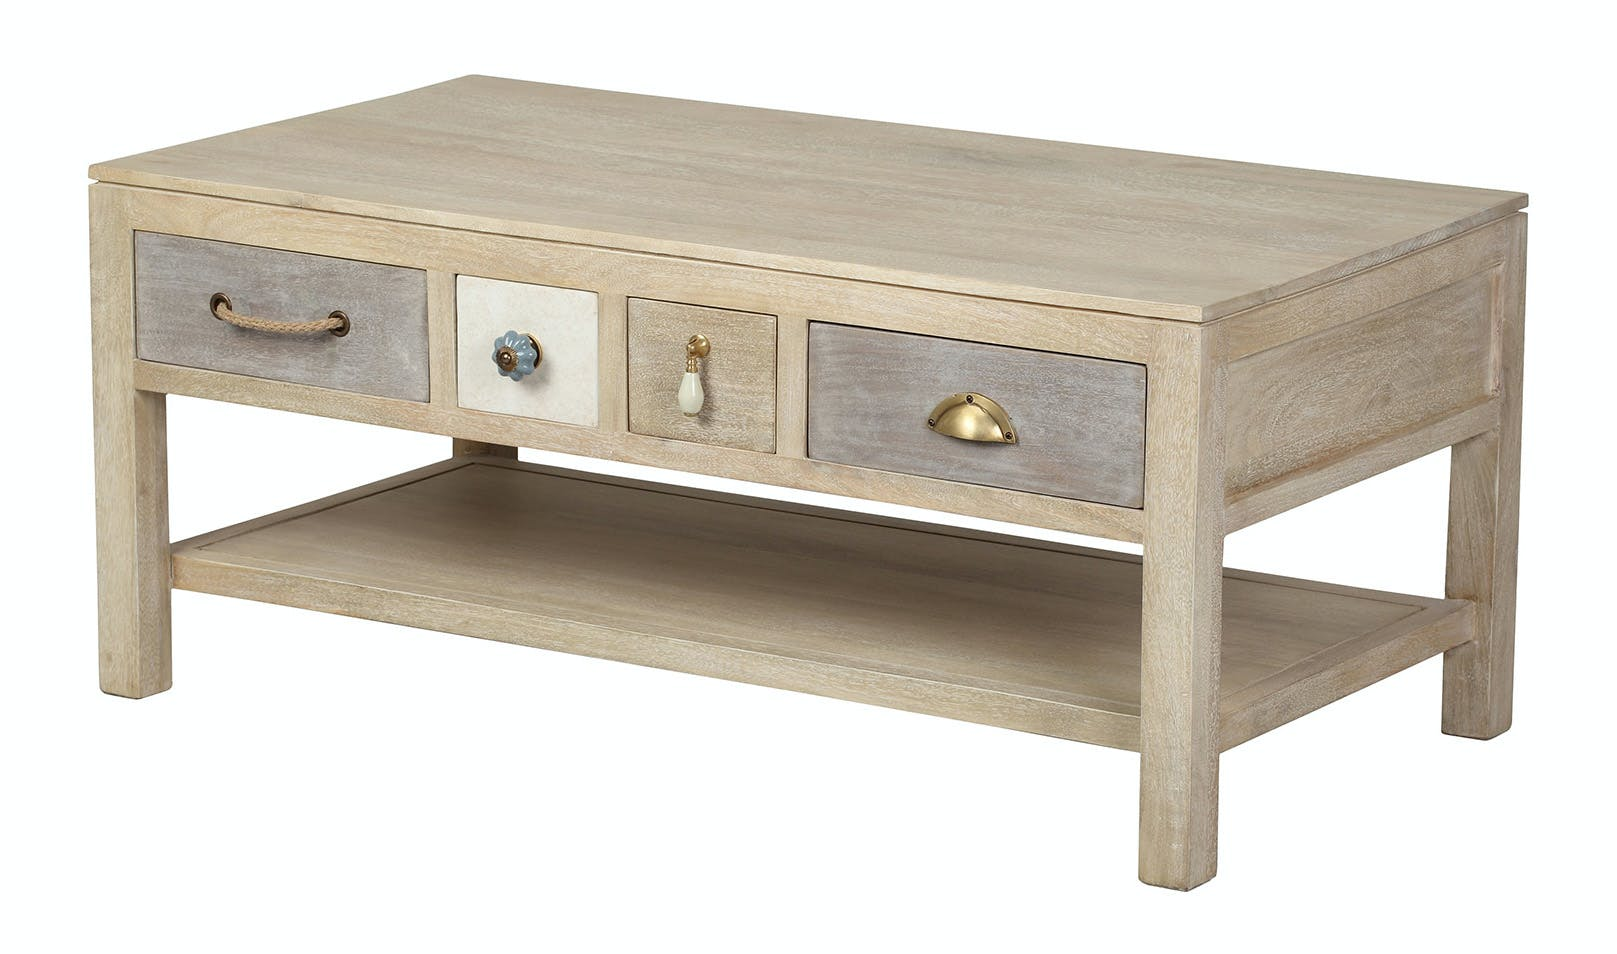 Table basse 4 tiroirs, manguier en patchwork de couleurs 105x55x45cm EVASION